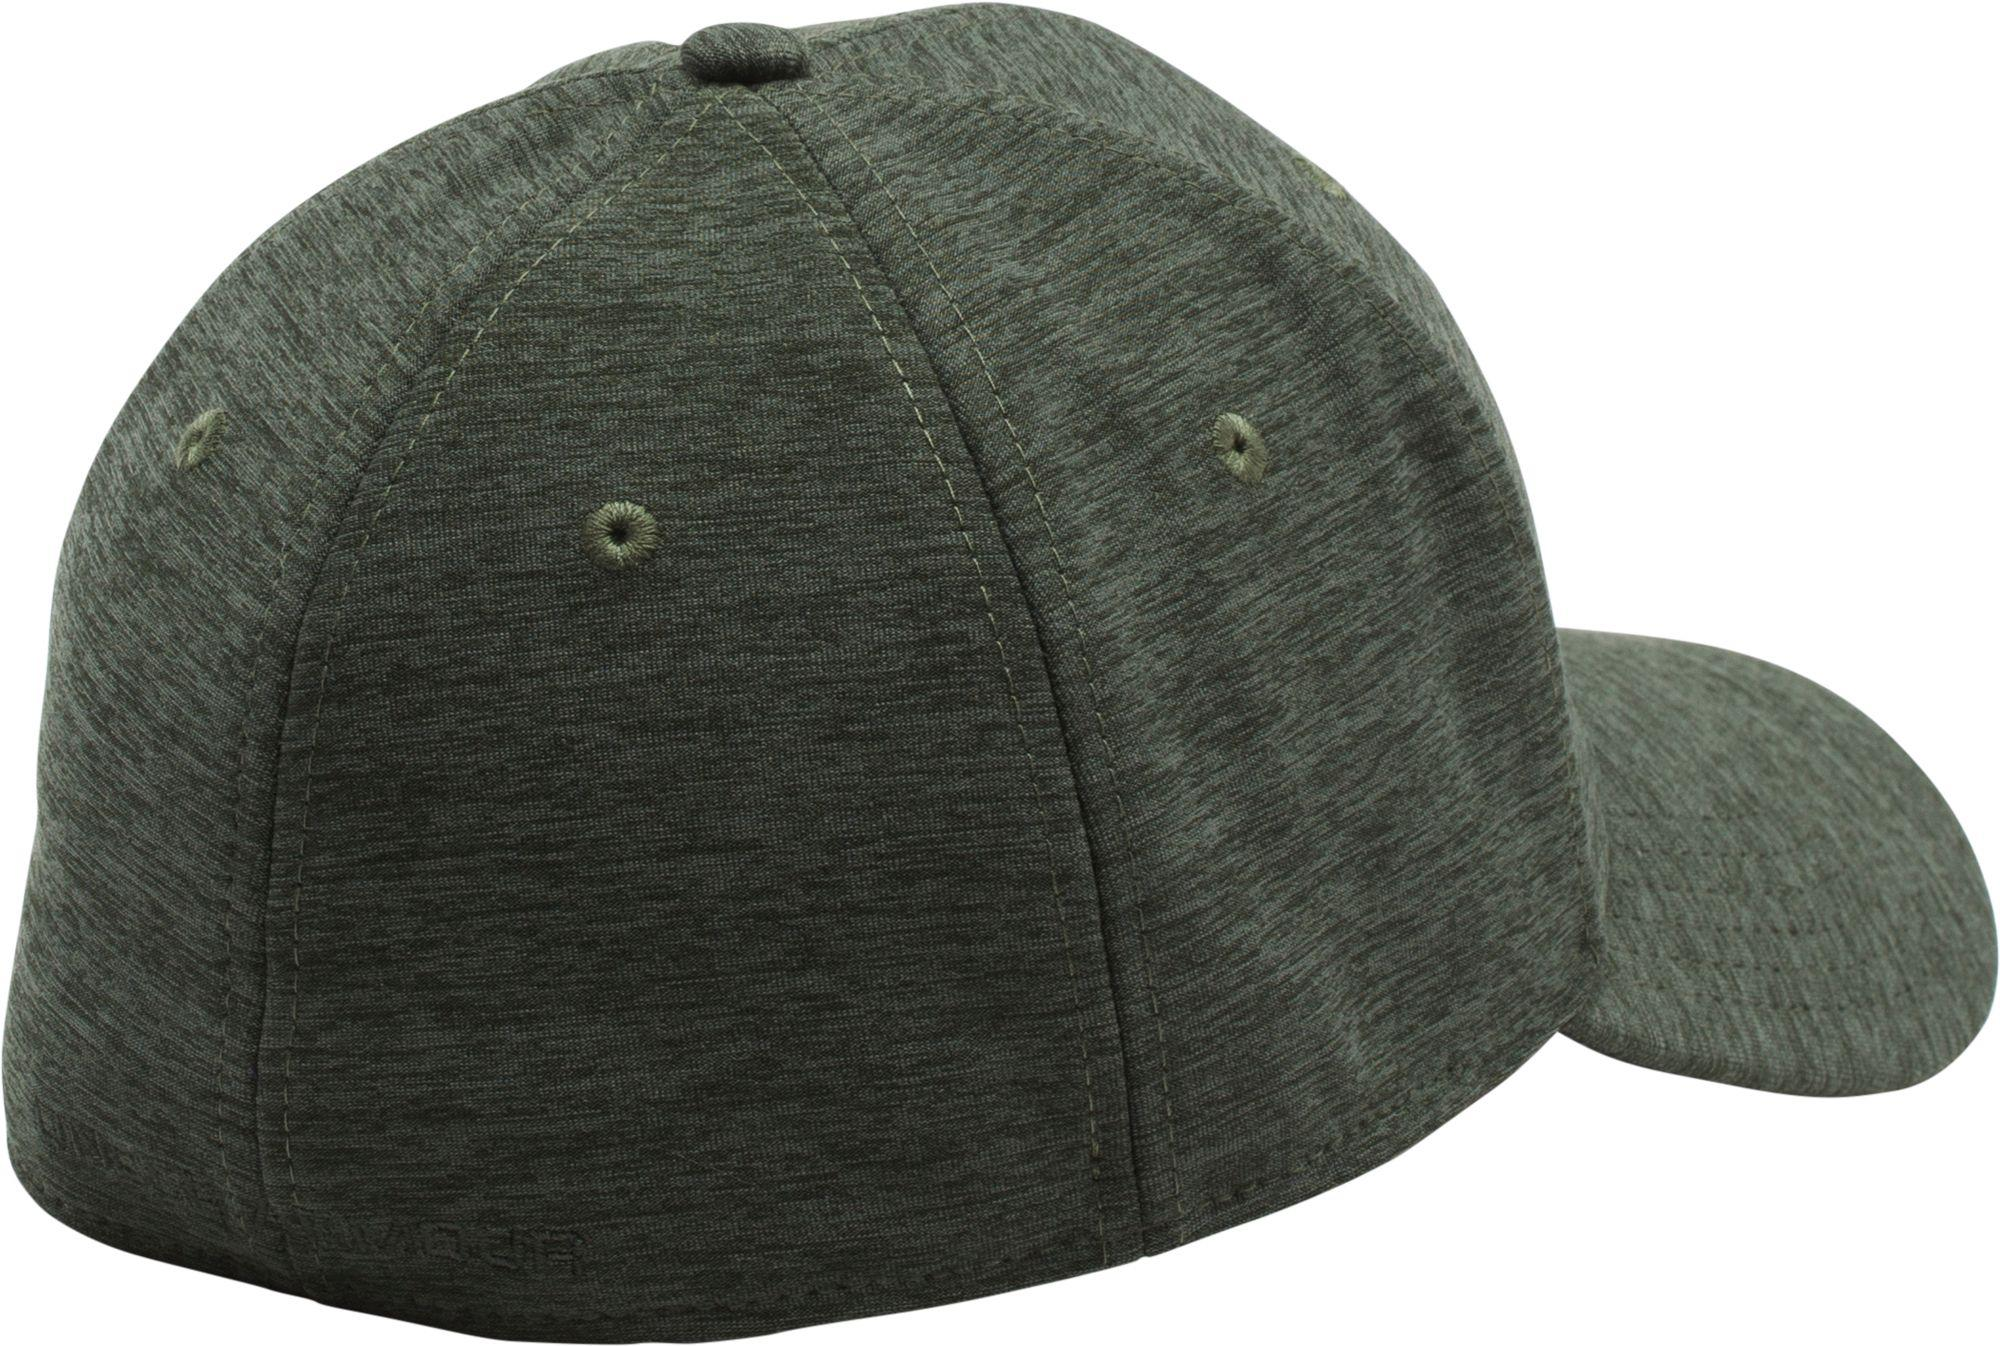 Lyst - Under Armour Twist Print Tech Closer Hat in Green for Men dca798ce9f8